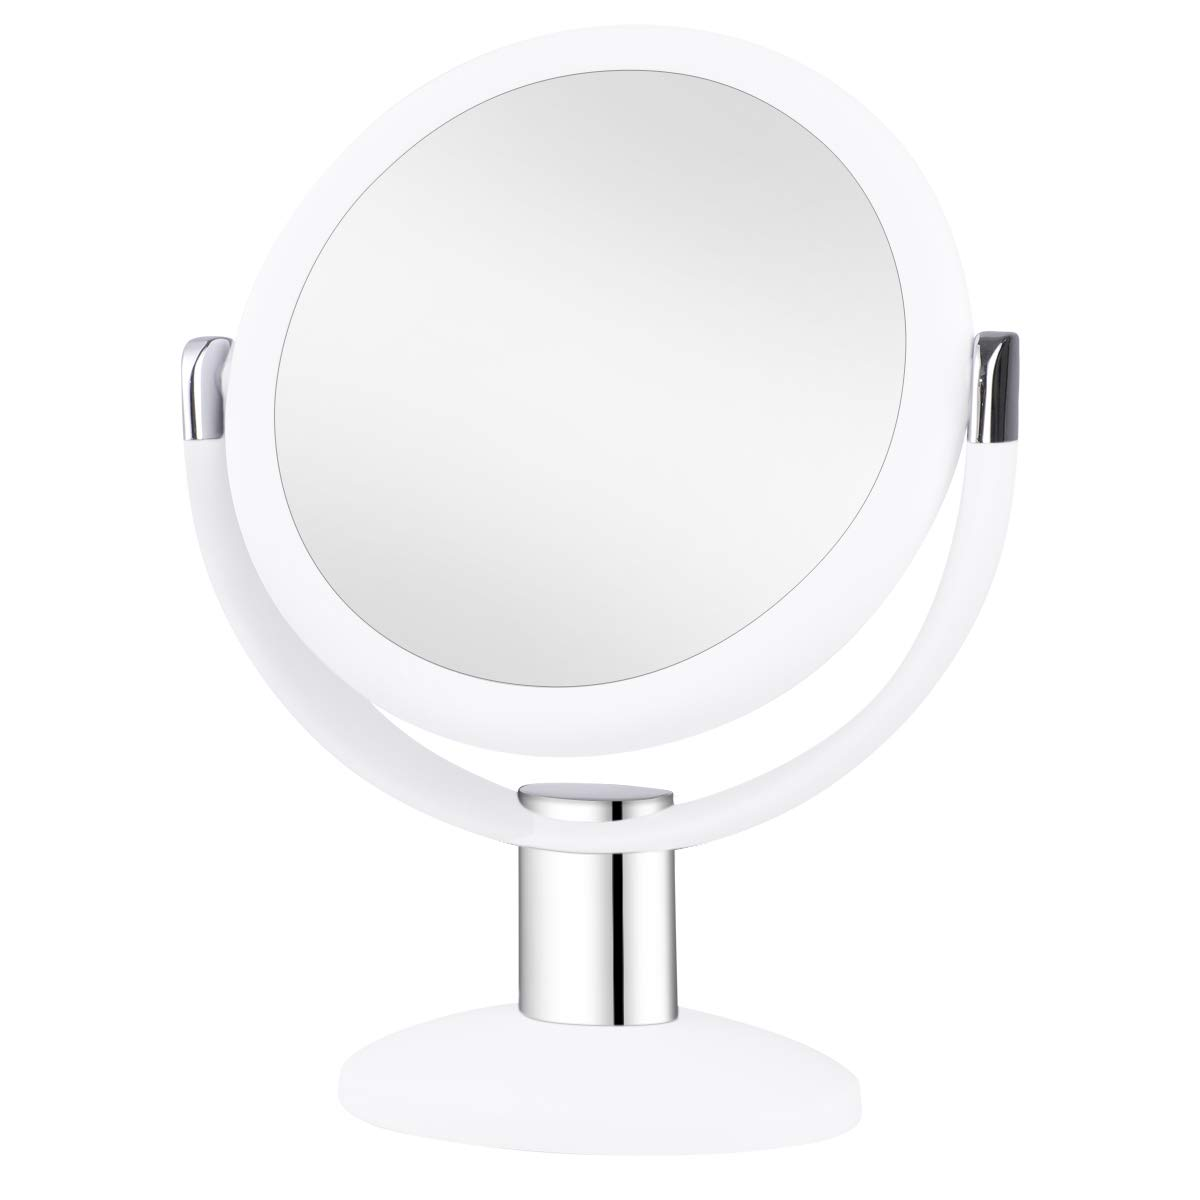 KEDSUM 1X & 10X Double Sided Magnifying Makeup Mirror, Vanity Mirror with Magnification and 360 Degree Rotation for Bathroom Bedroom Table Top